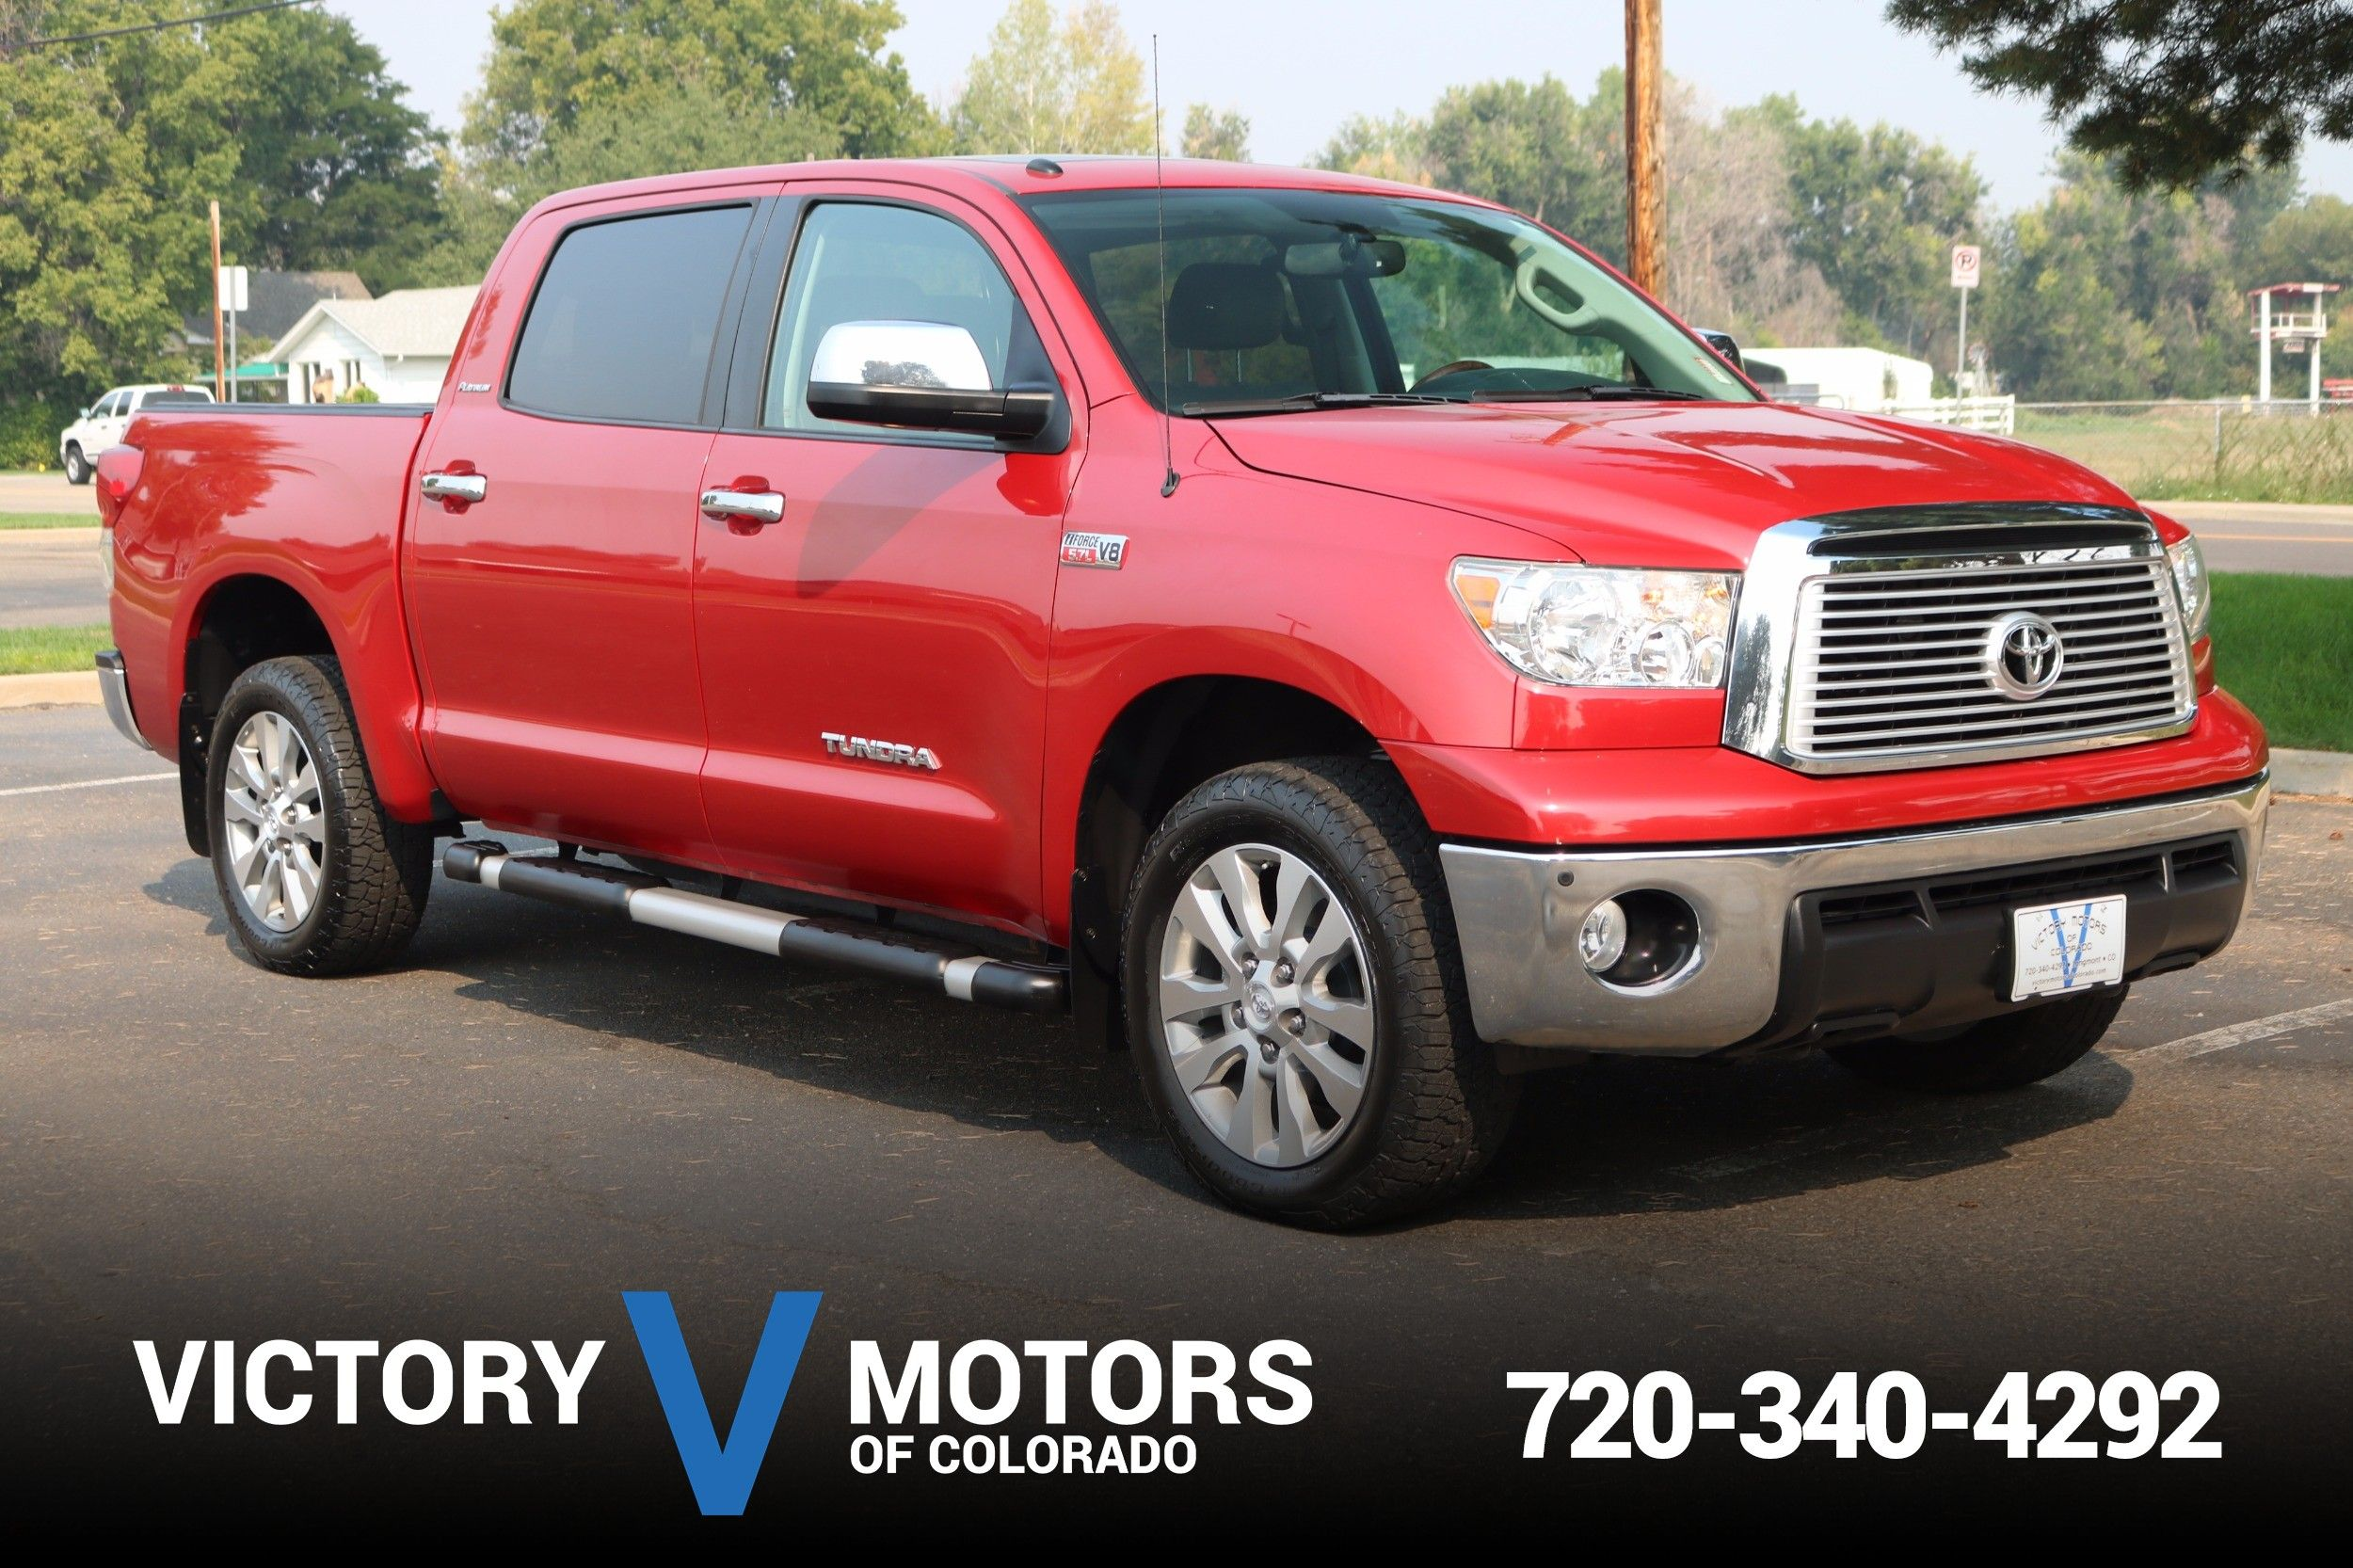 2012 toyota tundra limited victory motors of colorado rh victorymotorsofcolorado com 2014 toyota tundra service manual pdf 2013 toyota tundra service manual pdf